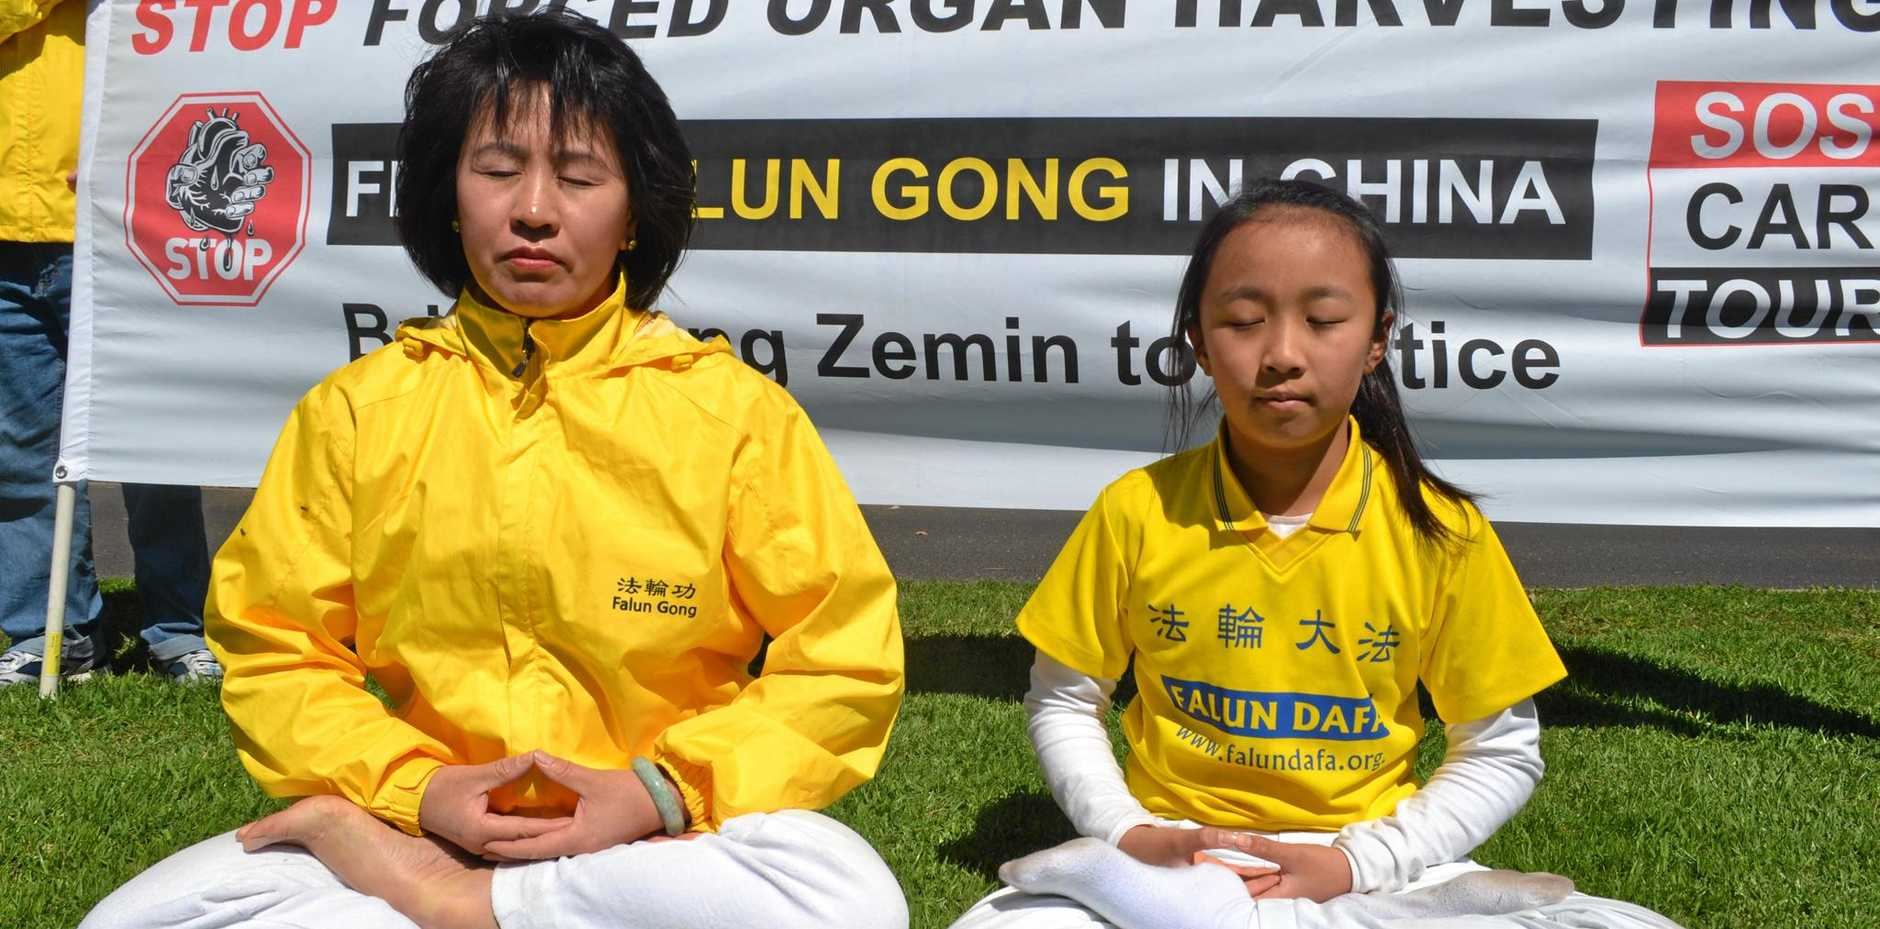 PEACE: Annie Zhao and her daughter Julia Yu are raising awareness of forced organ harvesting in China.